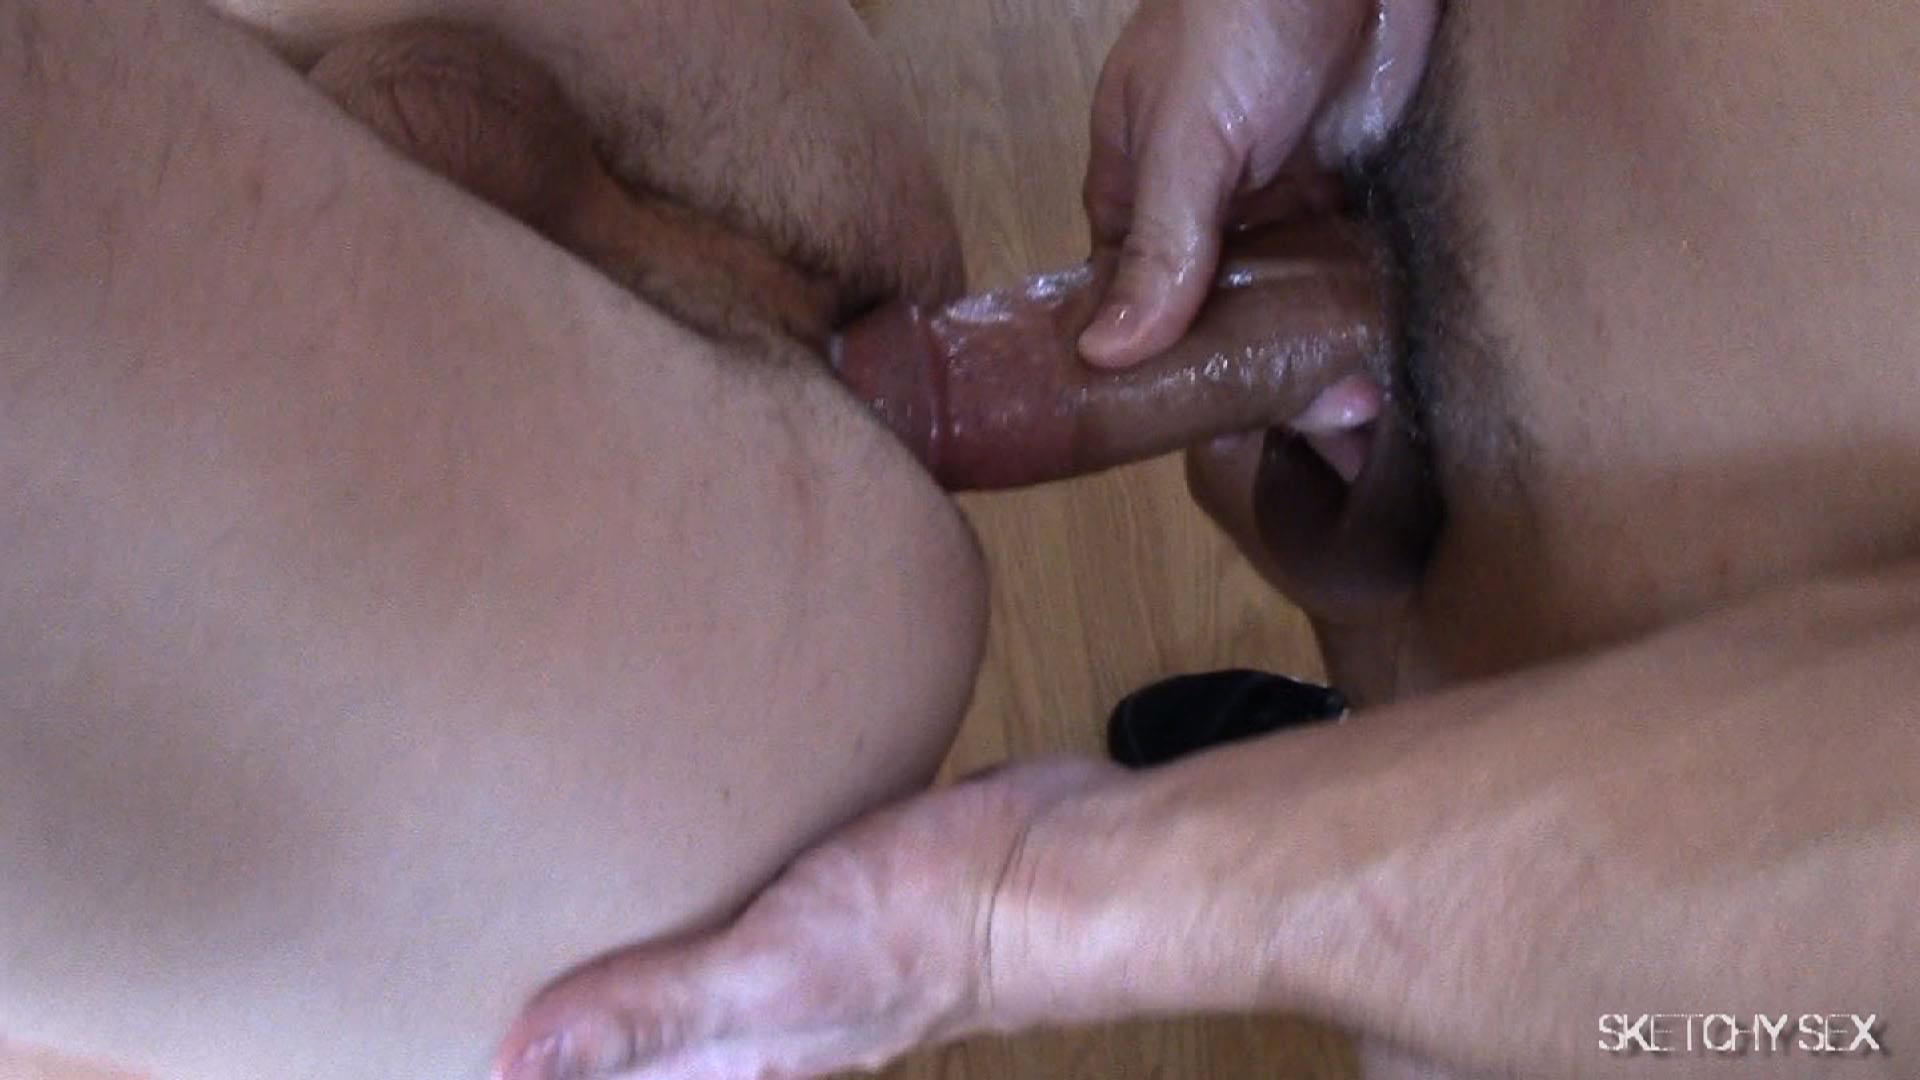 Sketchy Sex Nate Taking Anonymous Bareback Loads Up The Ass Amateur Gay Porn 08 Taking More Than A Dozen Anonymous Bareback Loads Up The Ass